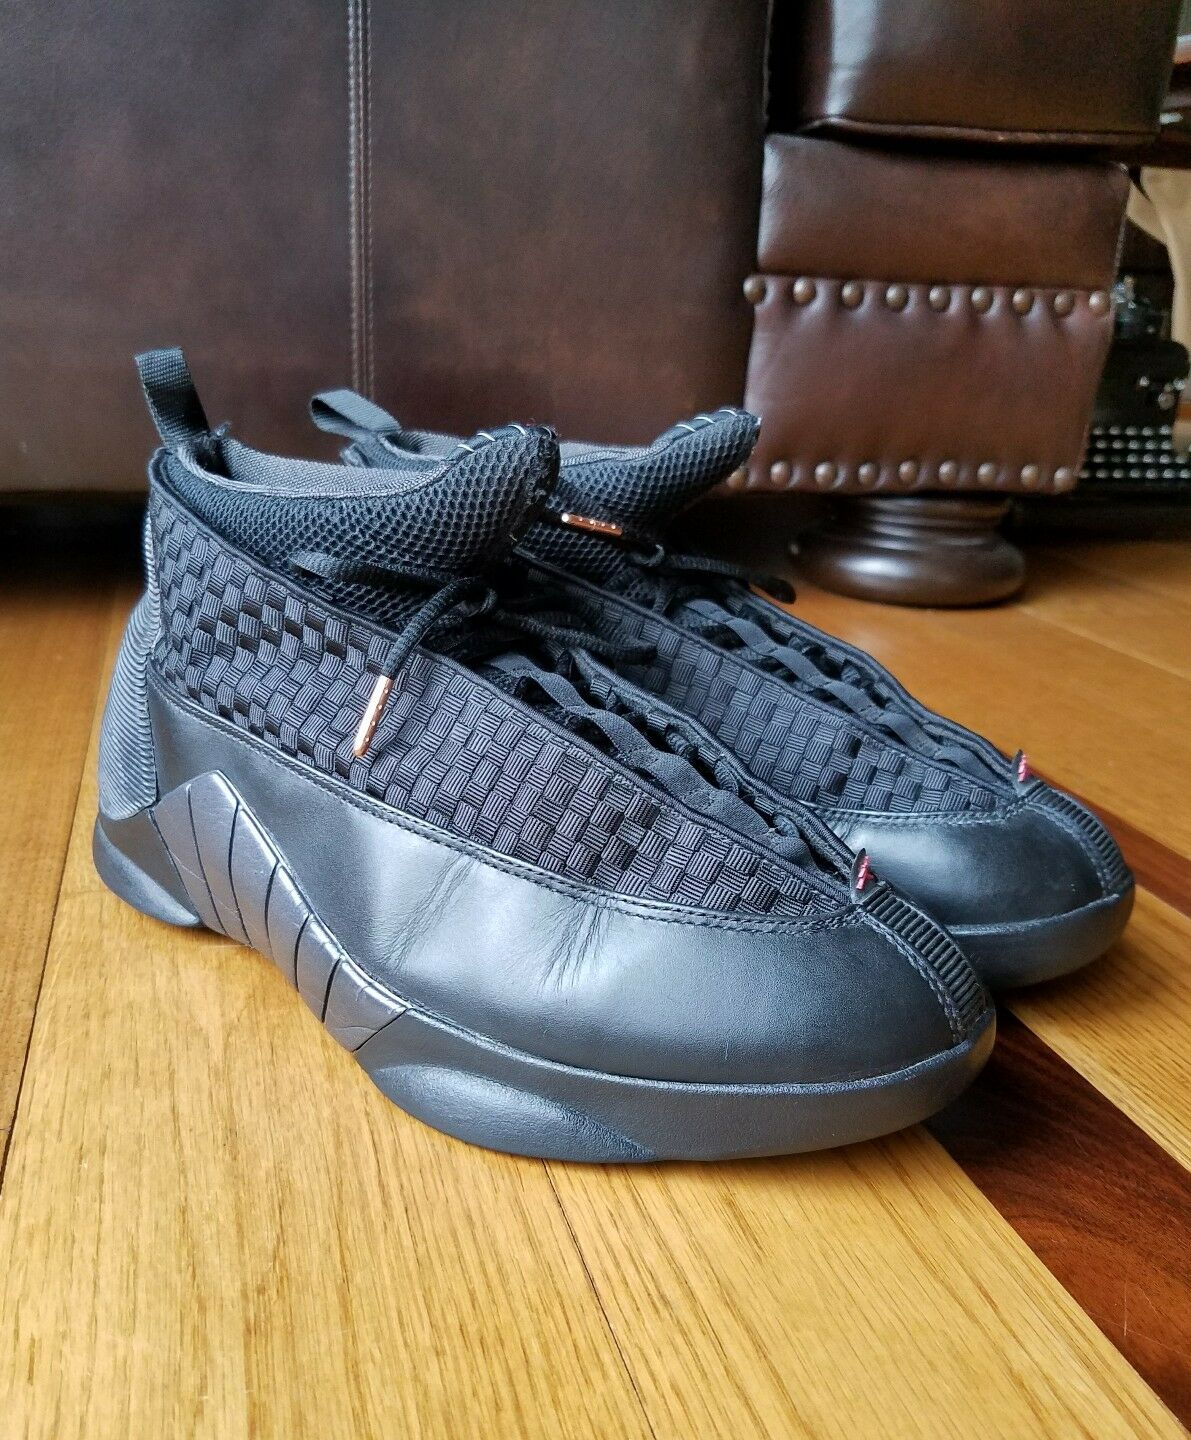 8711814a8ba5 Nike Air Jordan XV 15 Retro Stealth Black Varsity Red Red Red 317111-061  Size